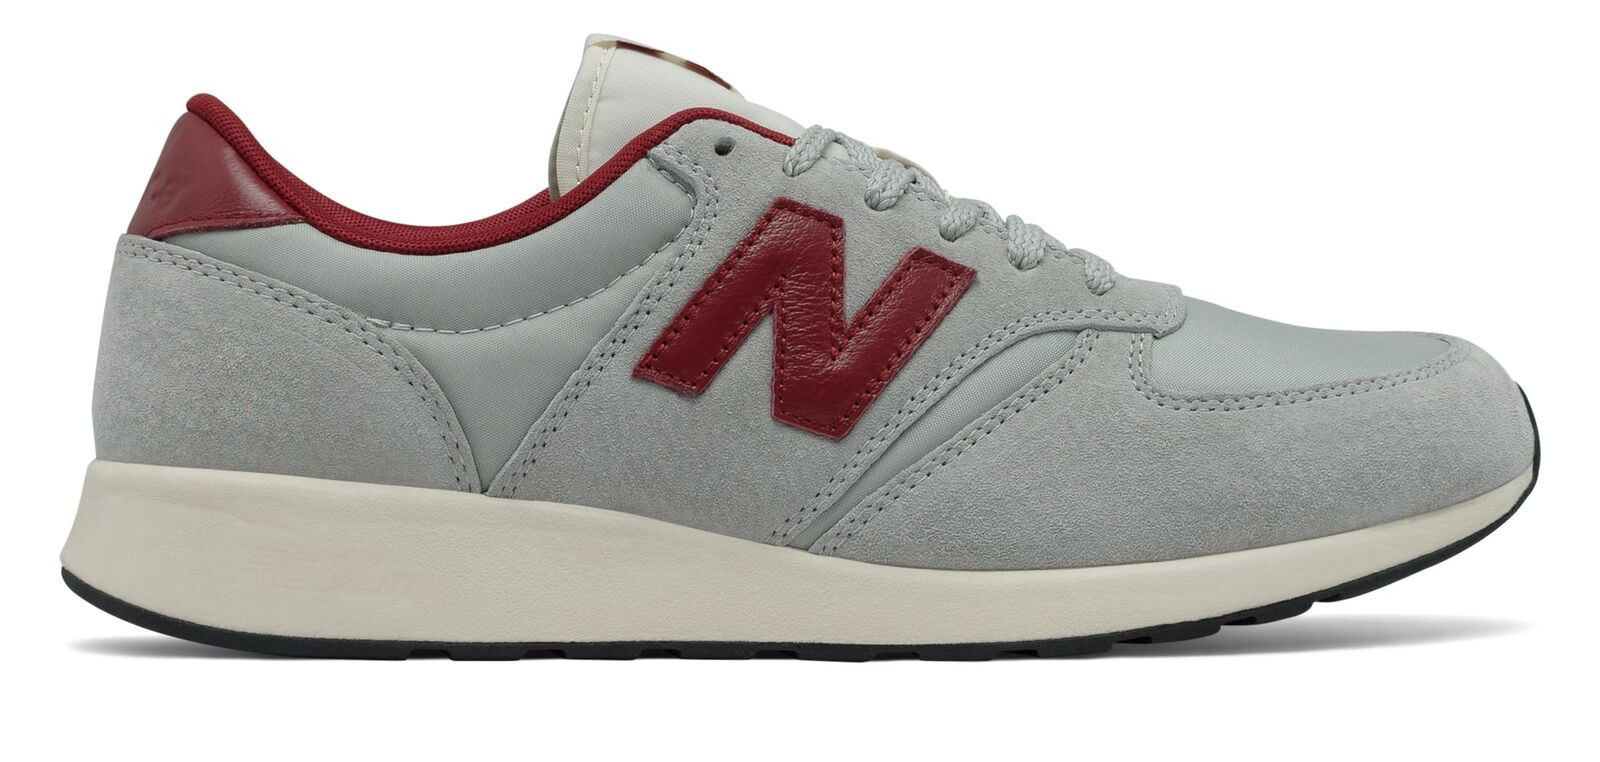 New Balance Male Men's 420 Re-Engineered Suede Comfort Adult Grey With Red